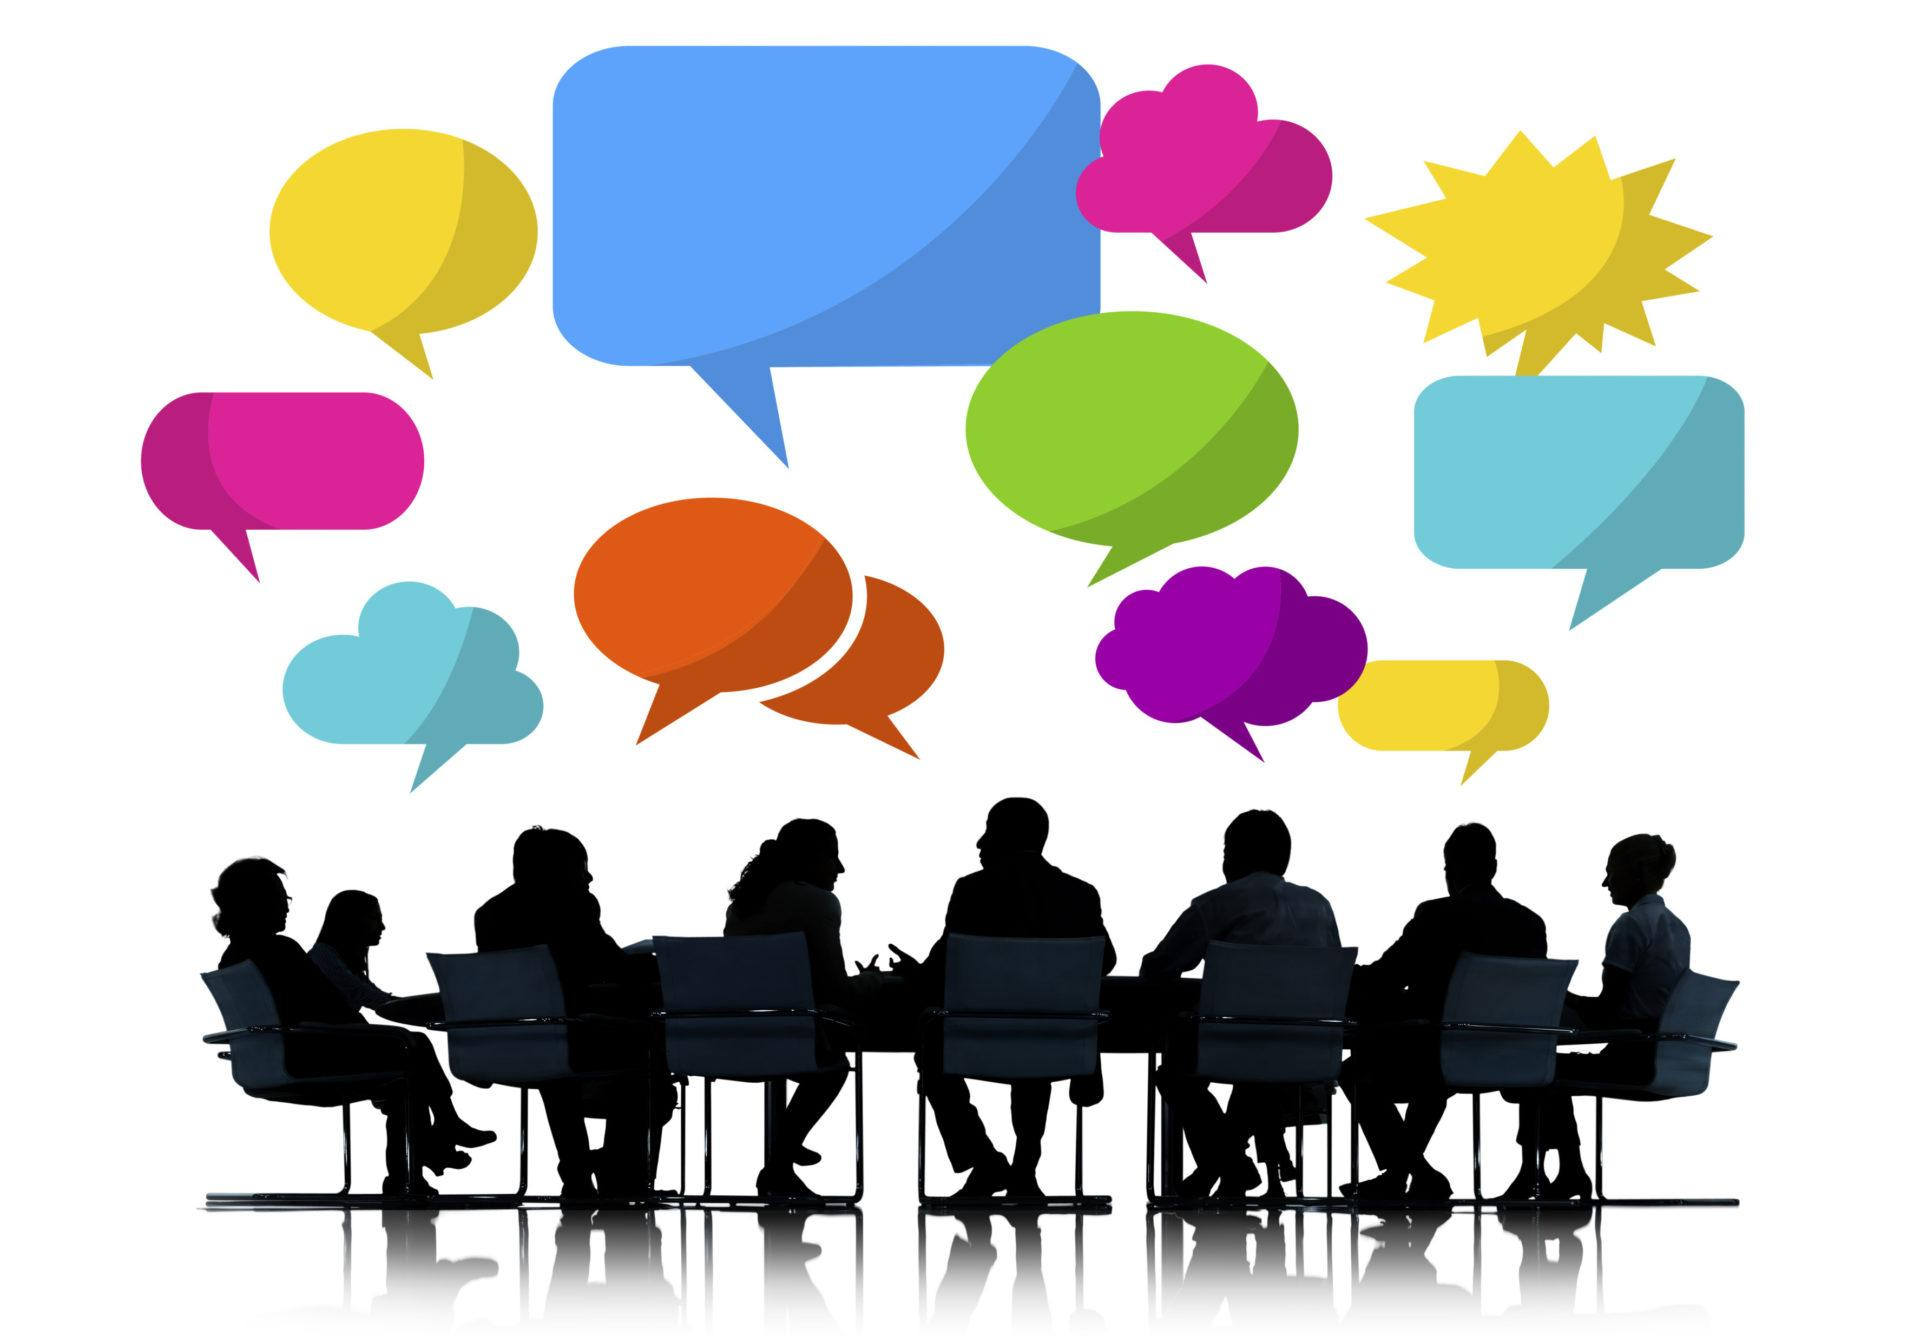 graphic-meeting-colorful-speech-bubbles-silhouette-cropped